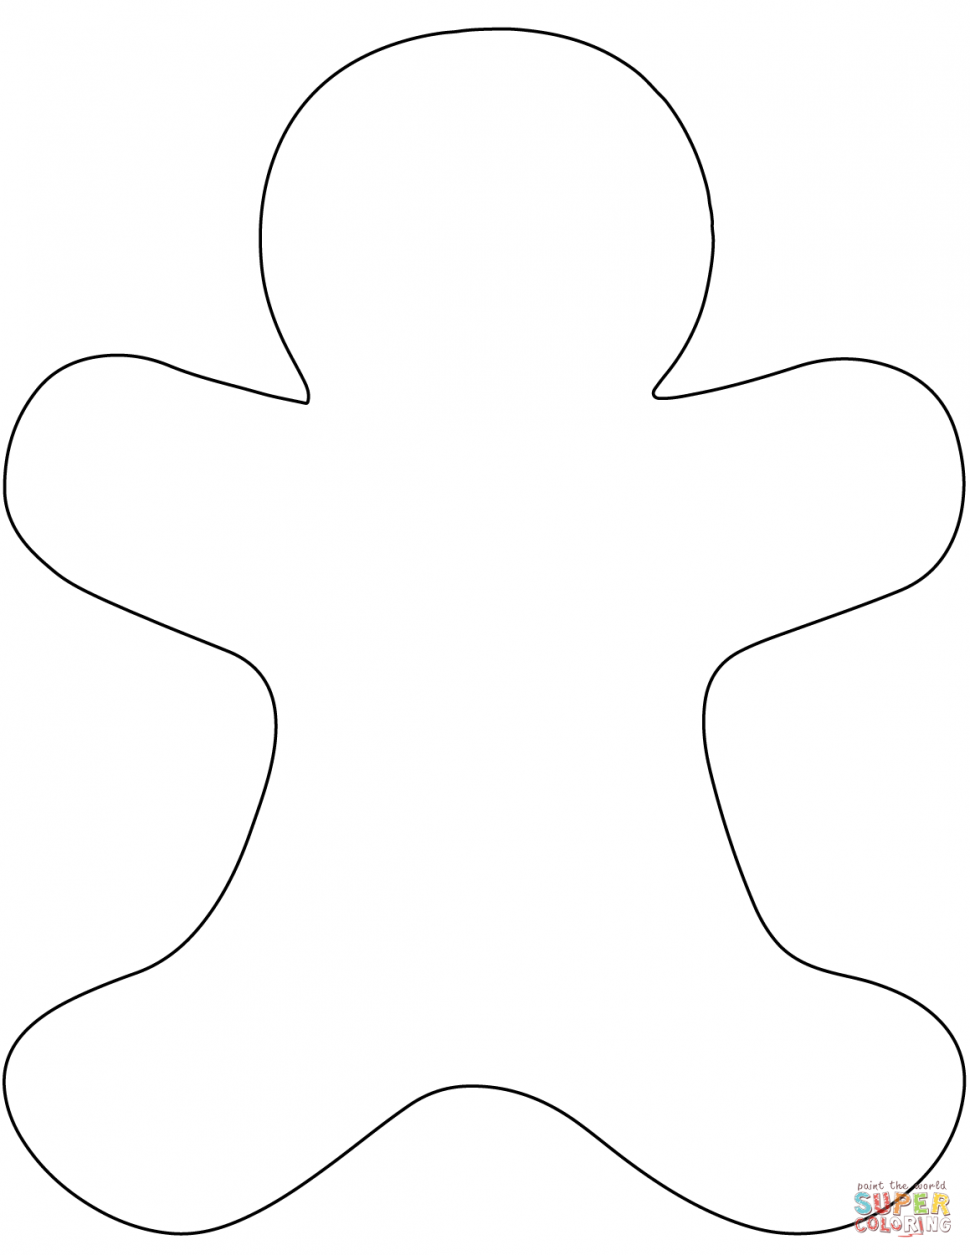 blank gingerbread man coloring page ginger bread men colouring pages gingerbread man page coloring man gingerbread blank